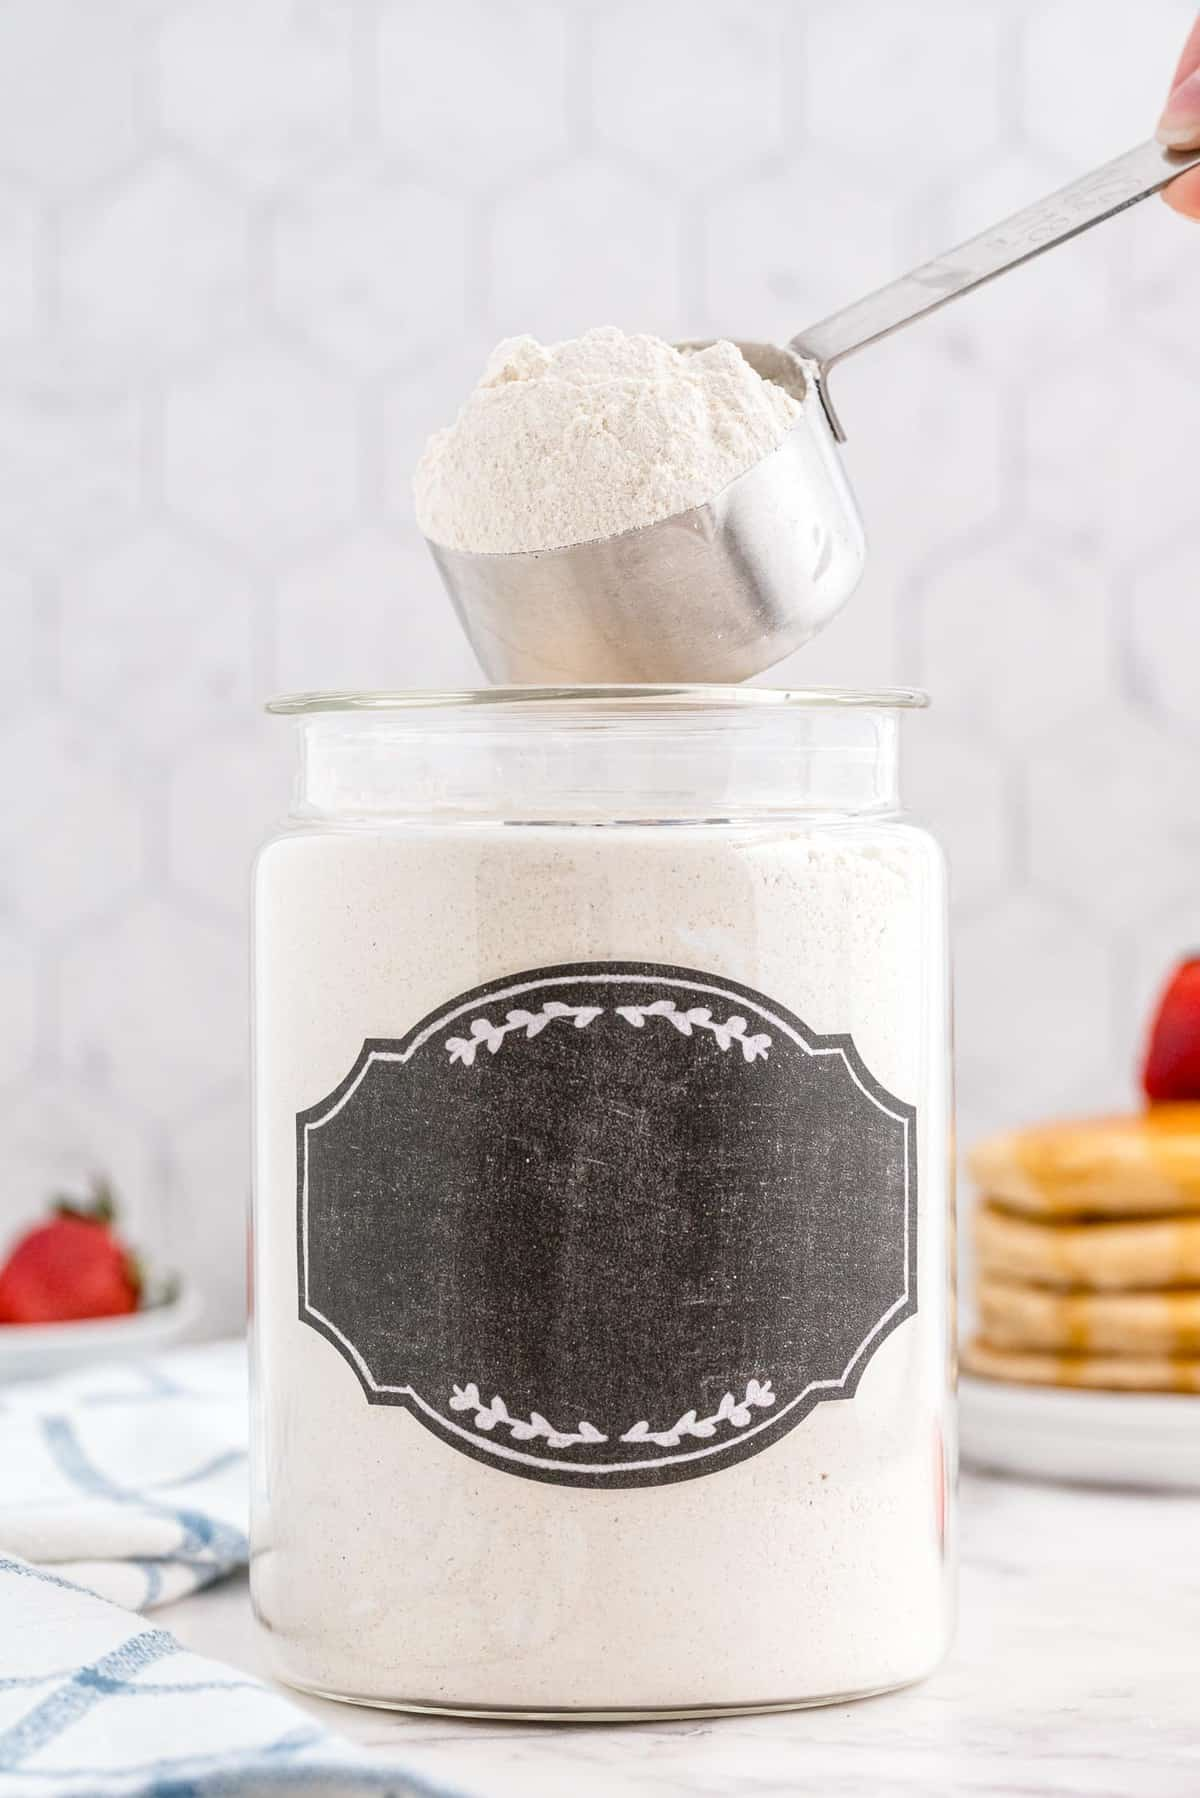 Pancake mix being scooped out of a large jar with black label.